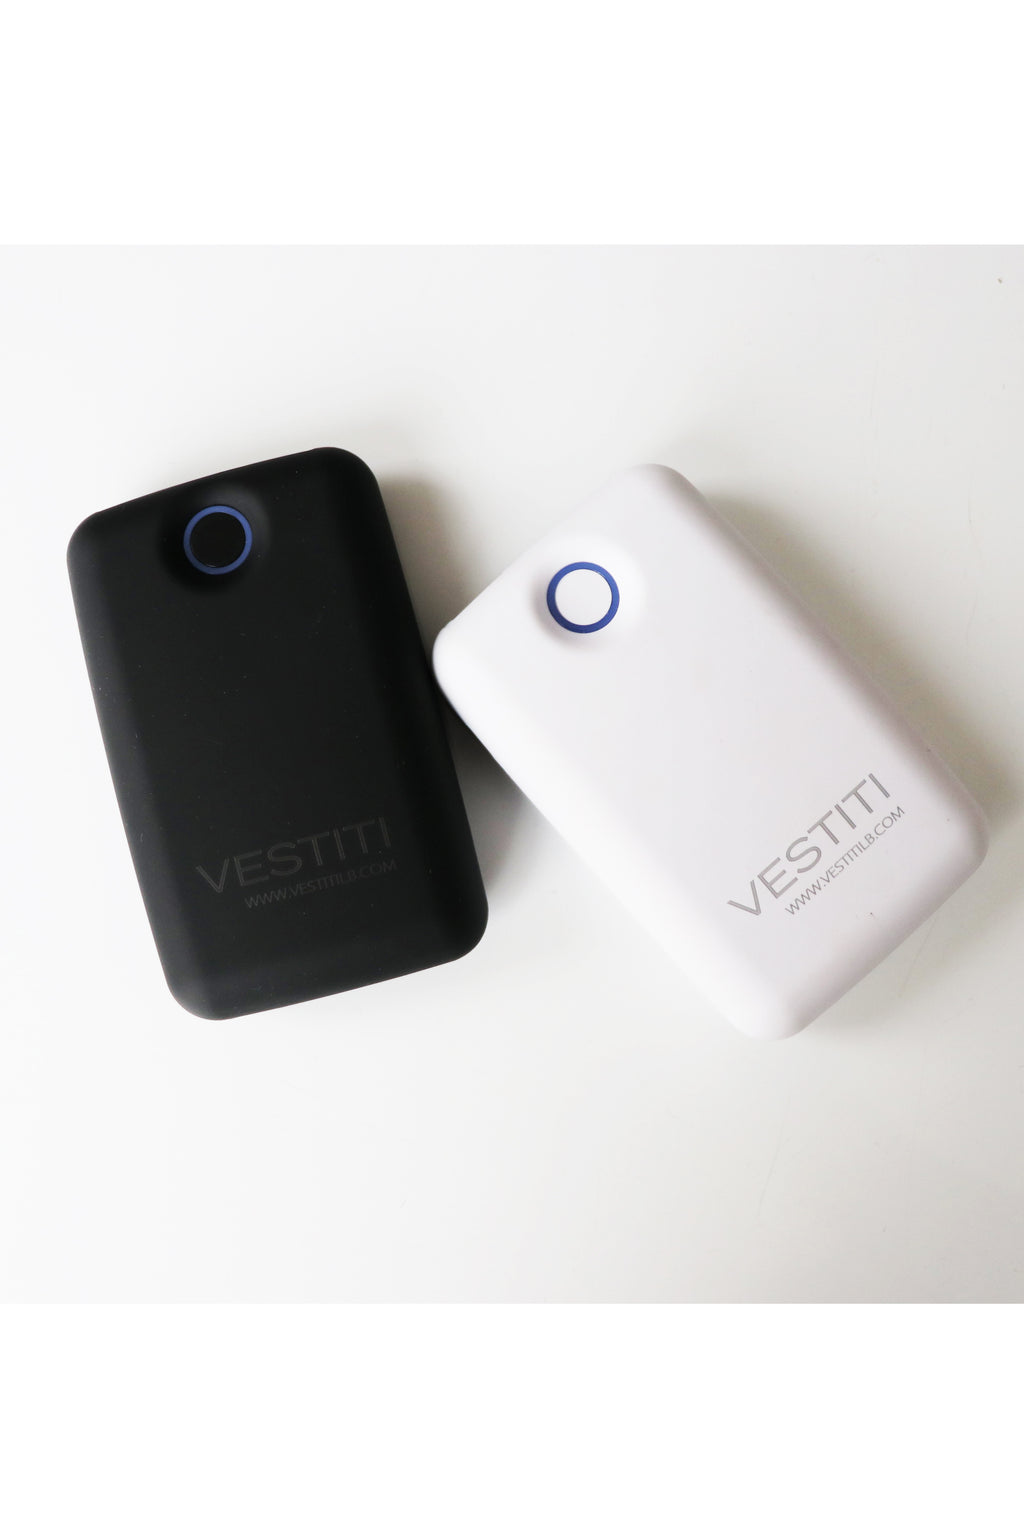 The Cute Pocket Power Bank - VESTITI LB